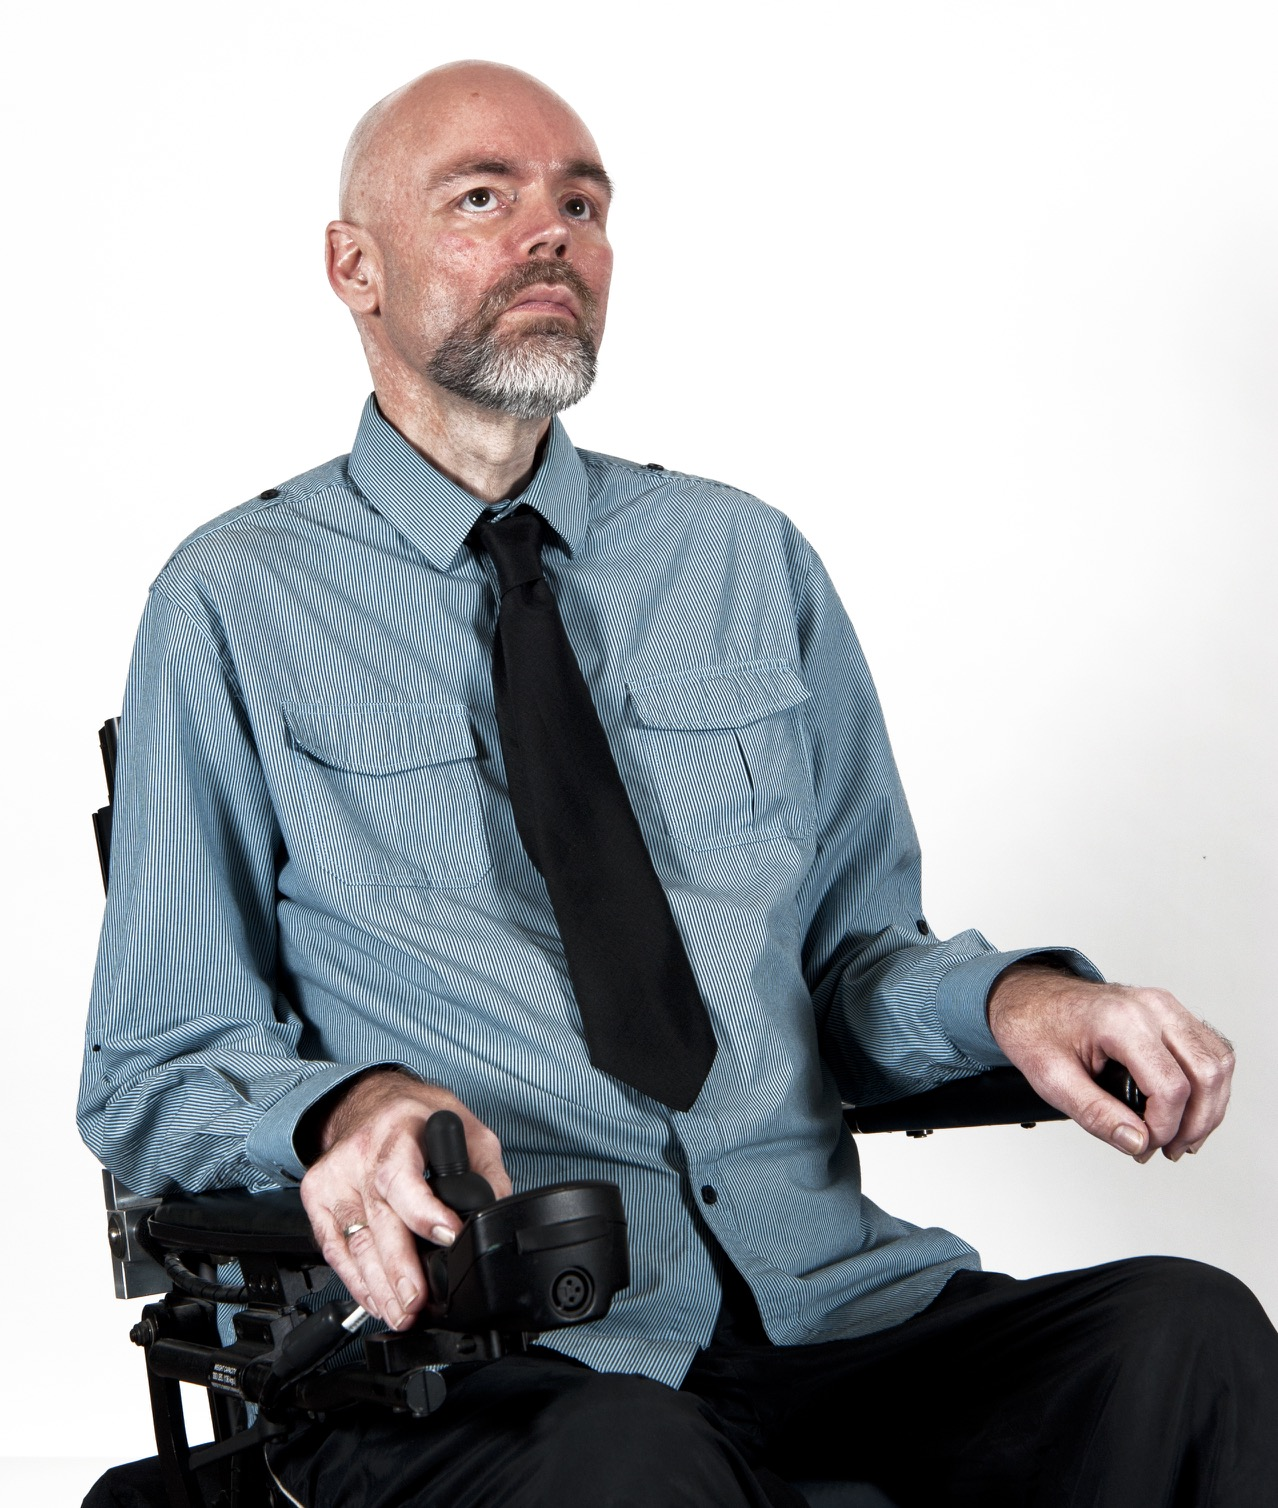 A man wearing a blue shirt and black tie is sitting in a power chair. He is looking off camera.